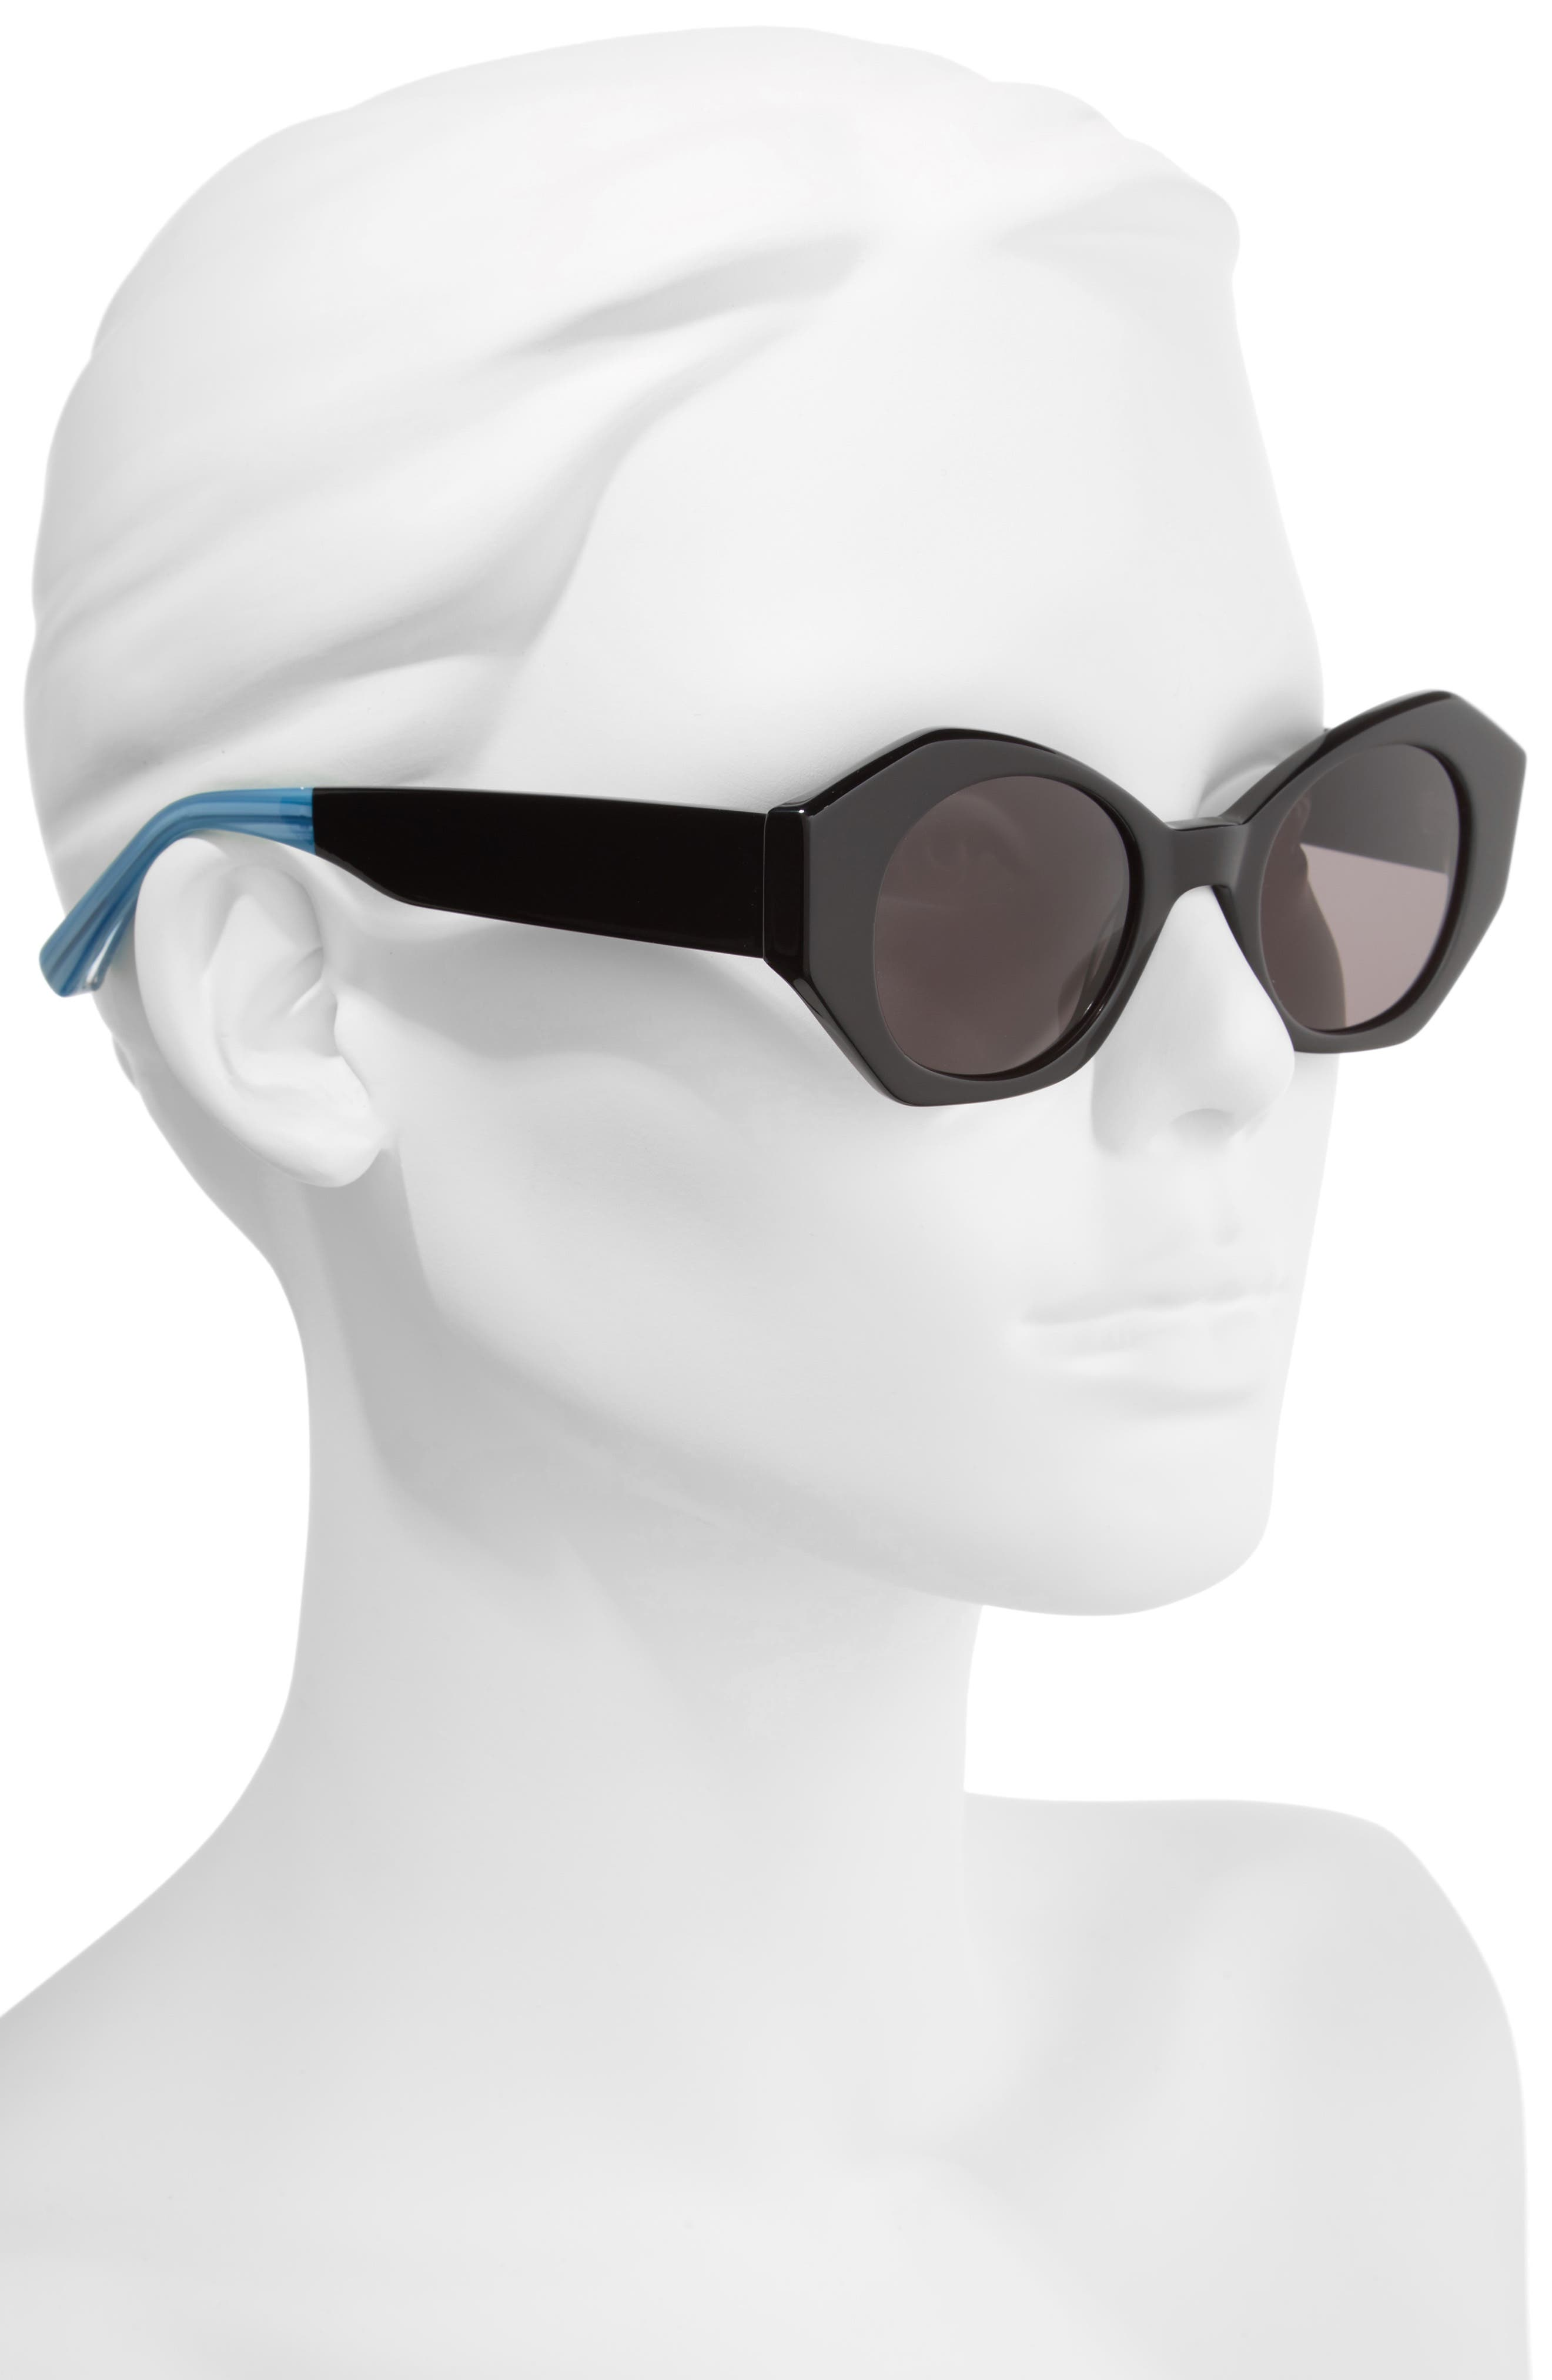 Huxley 46mm Geometric Sunglasses,                             Alternate thumbnail 3, color,